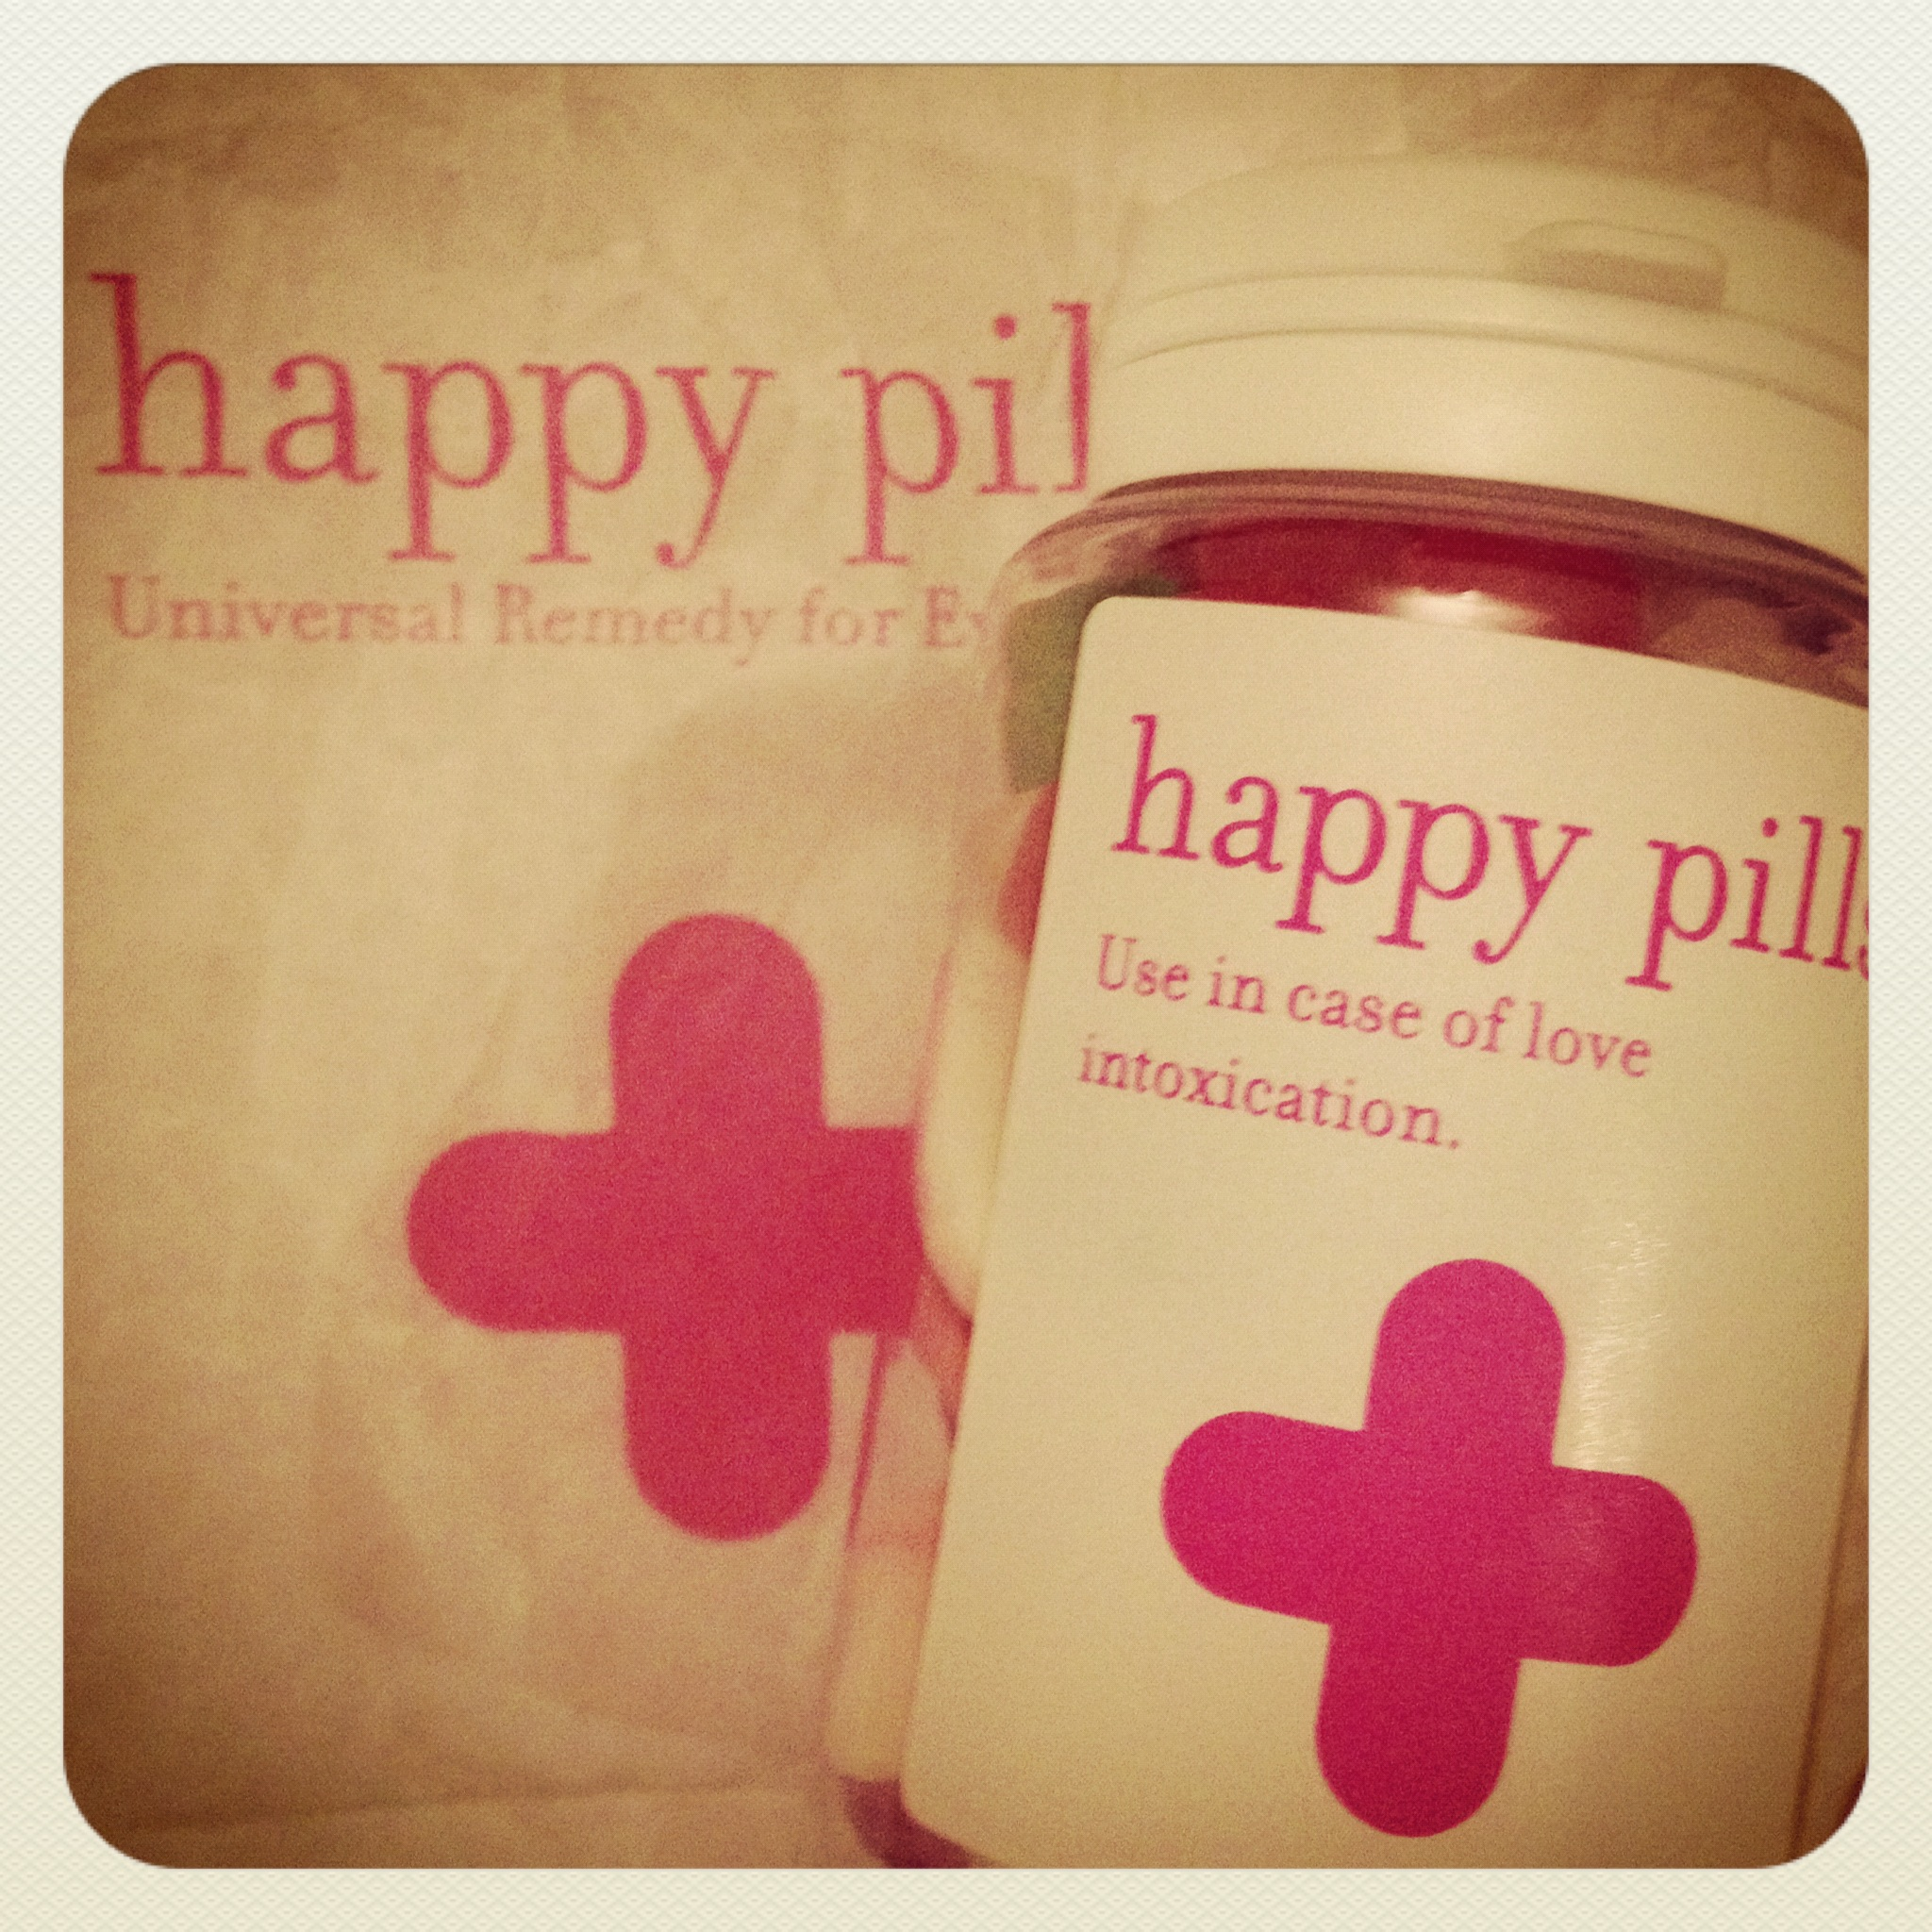 Happy pills - in case of love intoxication